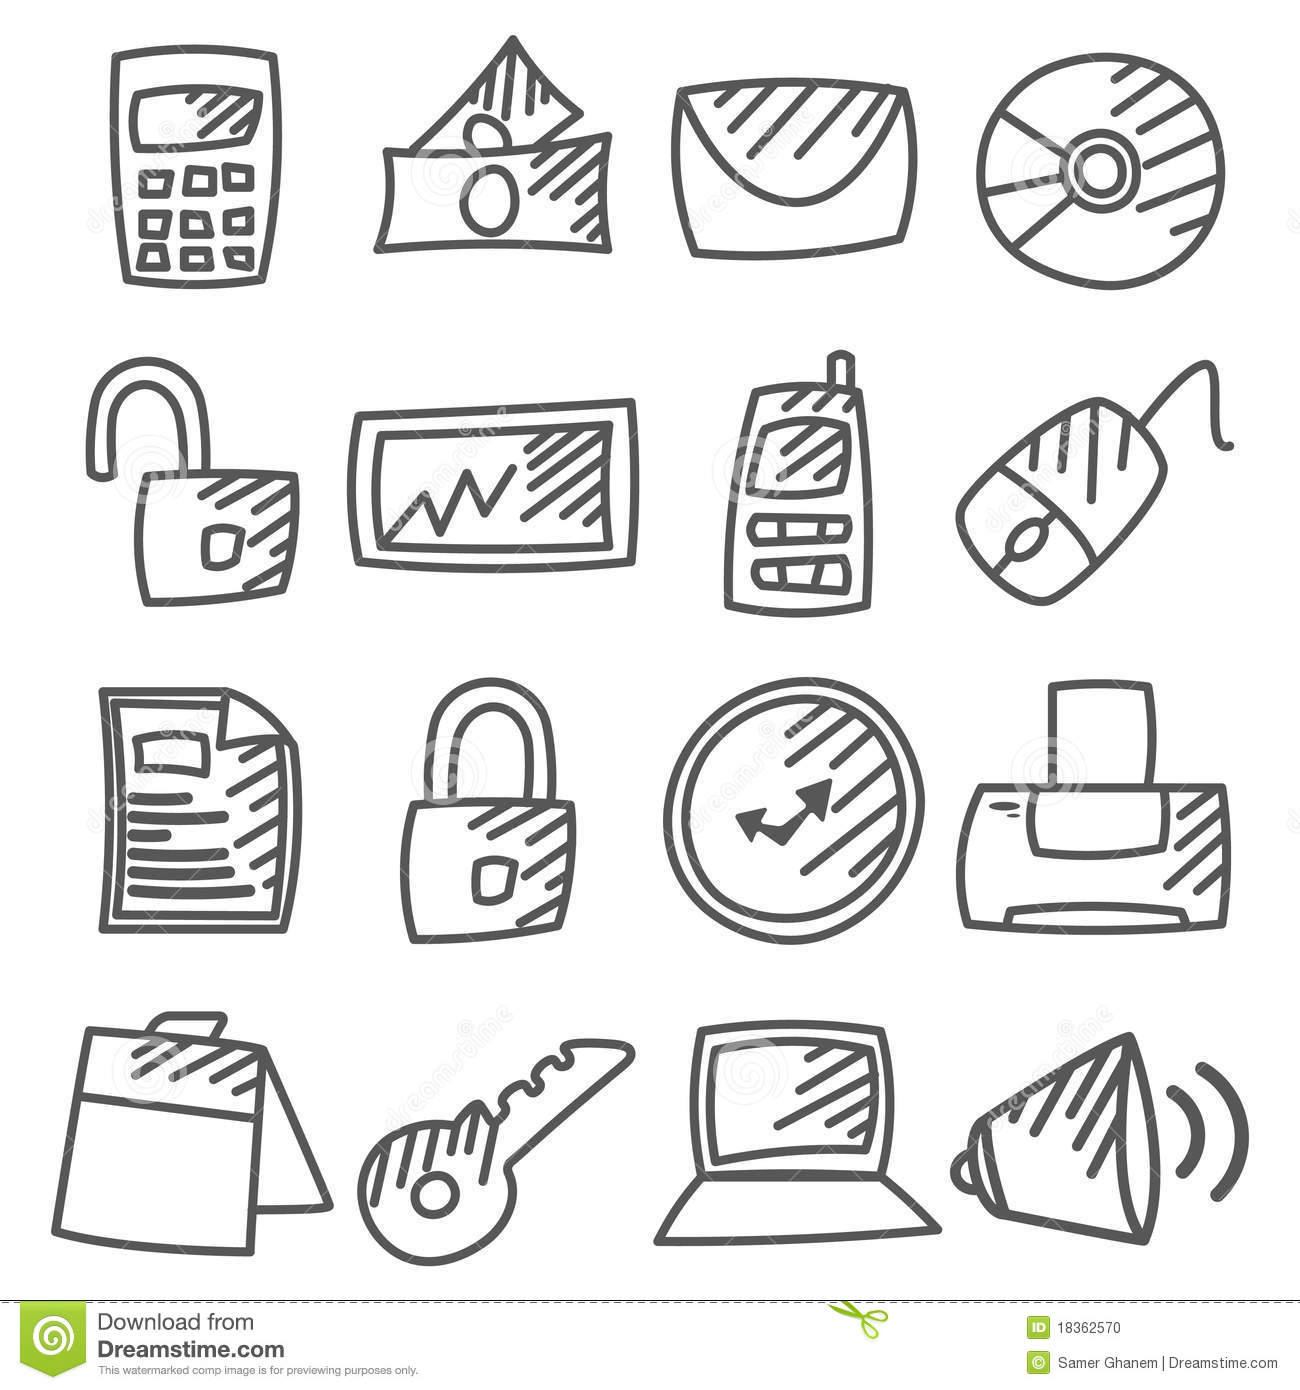 1204 with Stock Photo Doodle Office Icons Set Image18362570 on 03circuit diag also Stock Photo Doodle Office Icons Set Image18362570 additionally 1204M2E2014 additionally 46735 further .